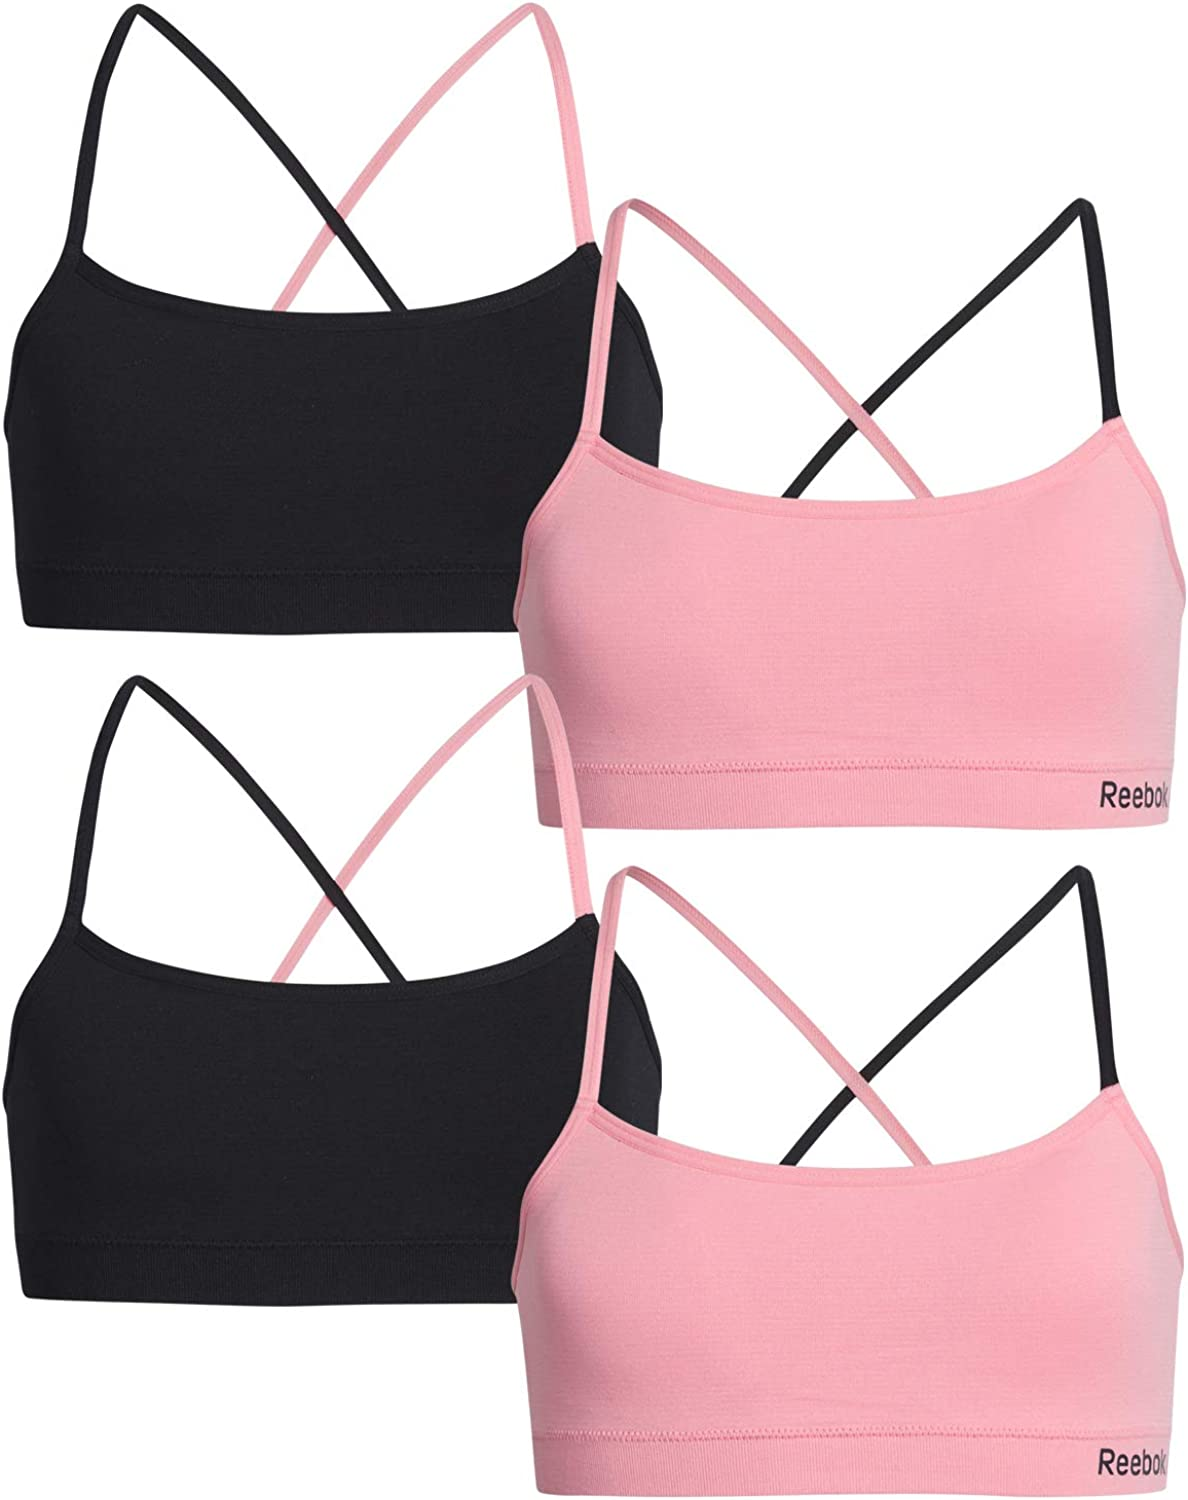 Reebok Girls Nylon//Spandex Seamless Bralette with Removable Pads 4 Pack